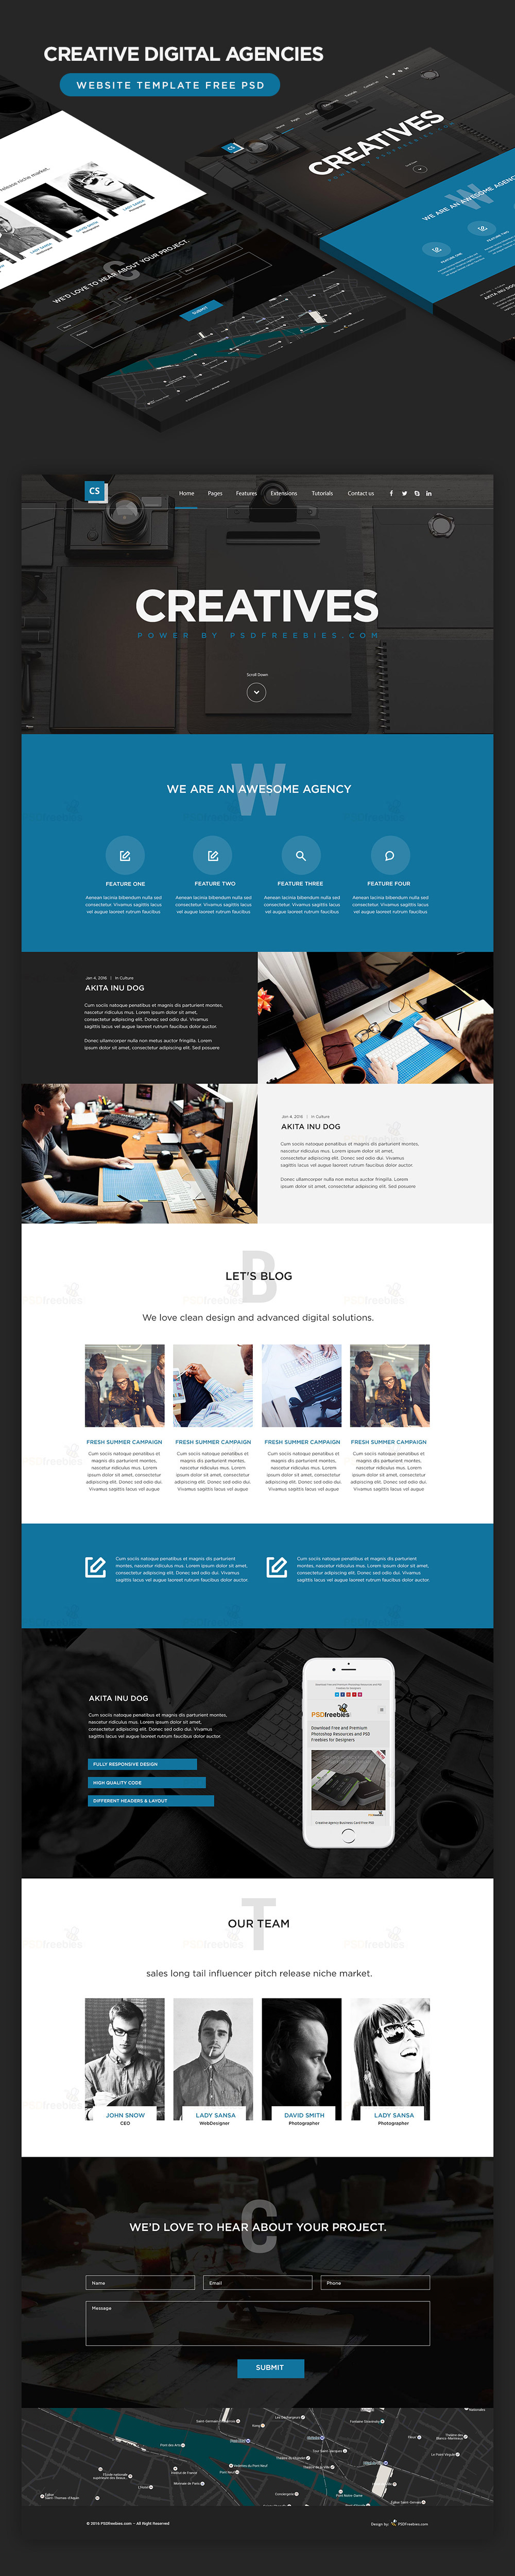 High quality 50 free corporate and business web templates psd creative digital agencies website template free psd friedricerecipe Choice Image